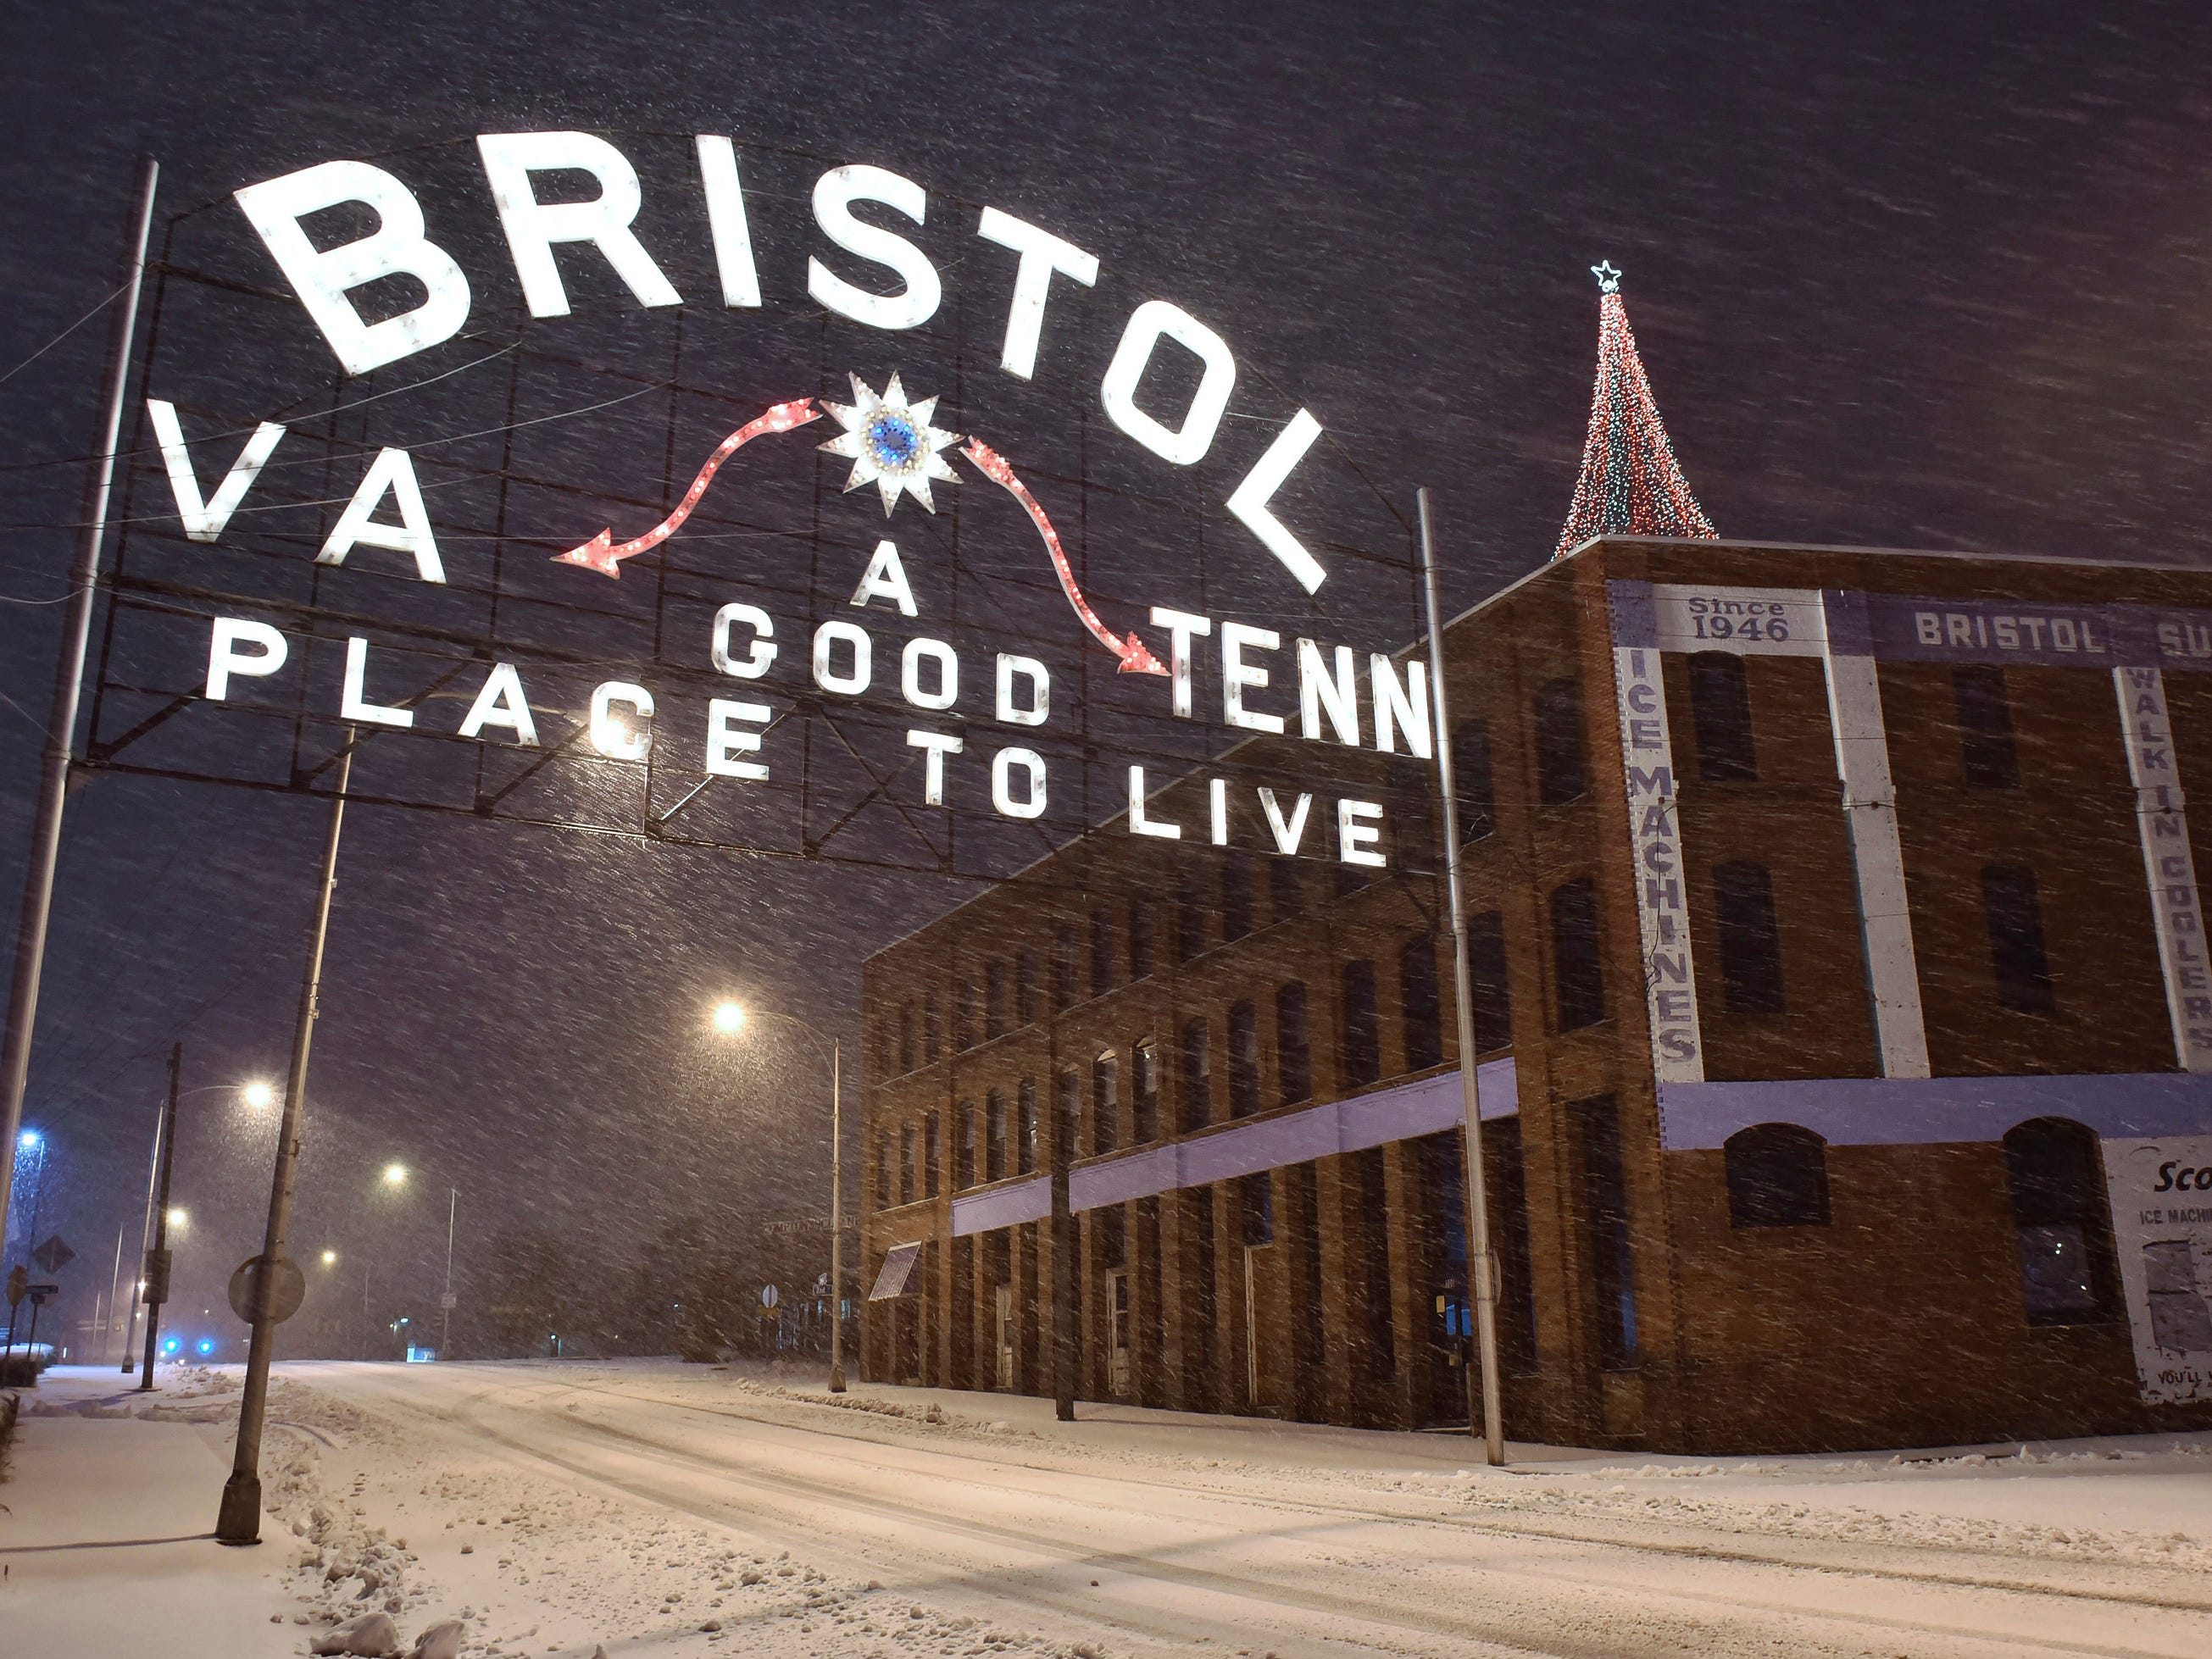 Snow falls in Bristol, Va., on Dec. 9.